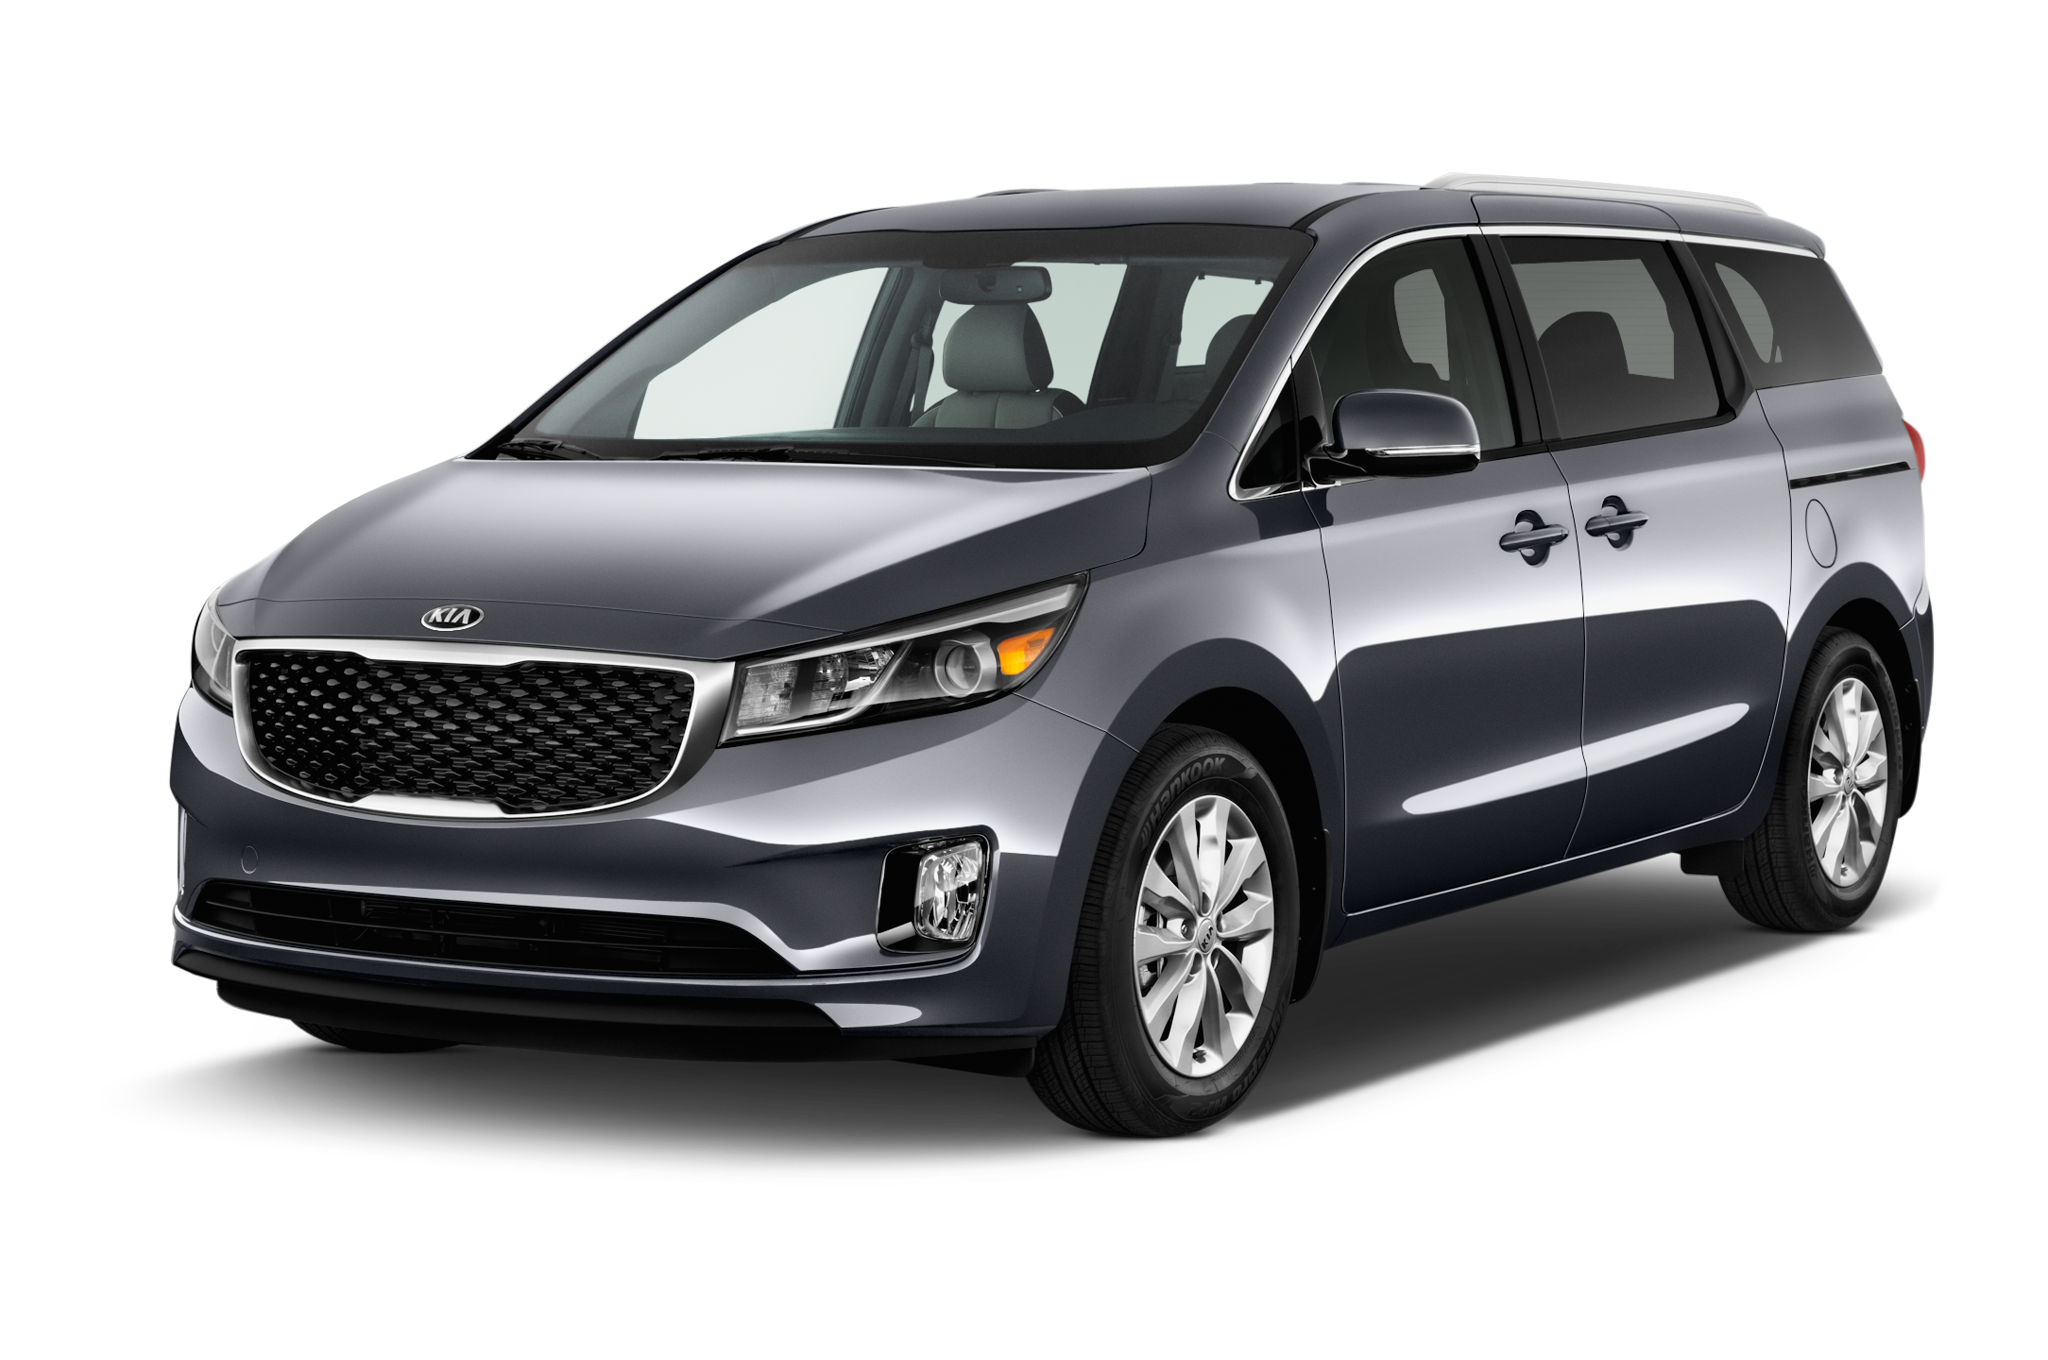 2015 kia sedona pricing fuel economy announced. Black Bedroom Furniture Sets. Home Design Ideas